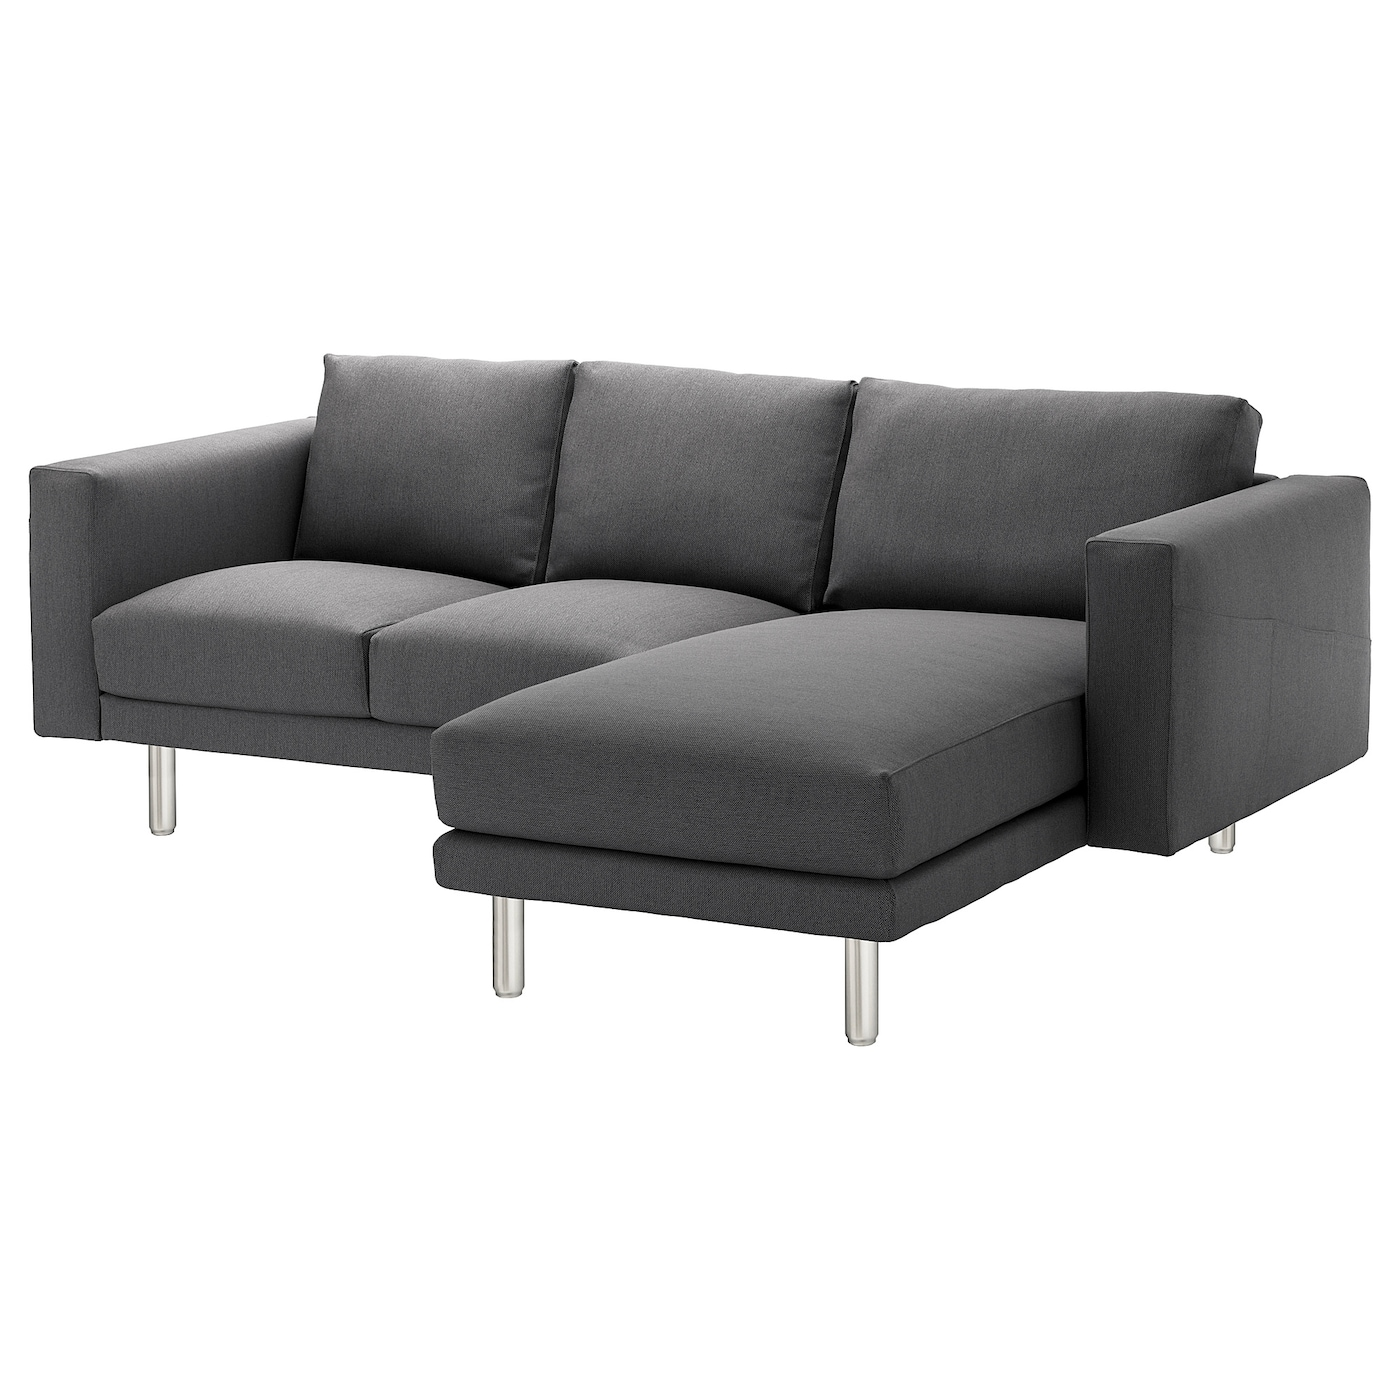 Norsborg 3 seat sofa with chaise longue finnsta dark grey for 5 seater sofa with chaise